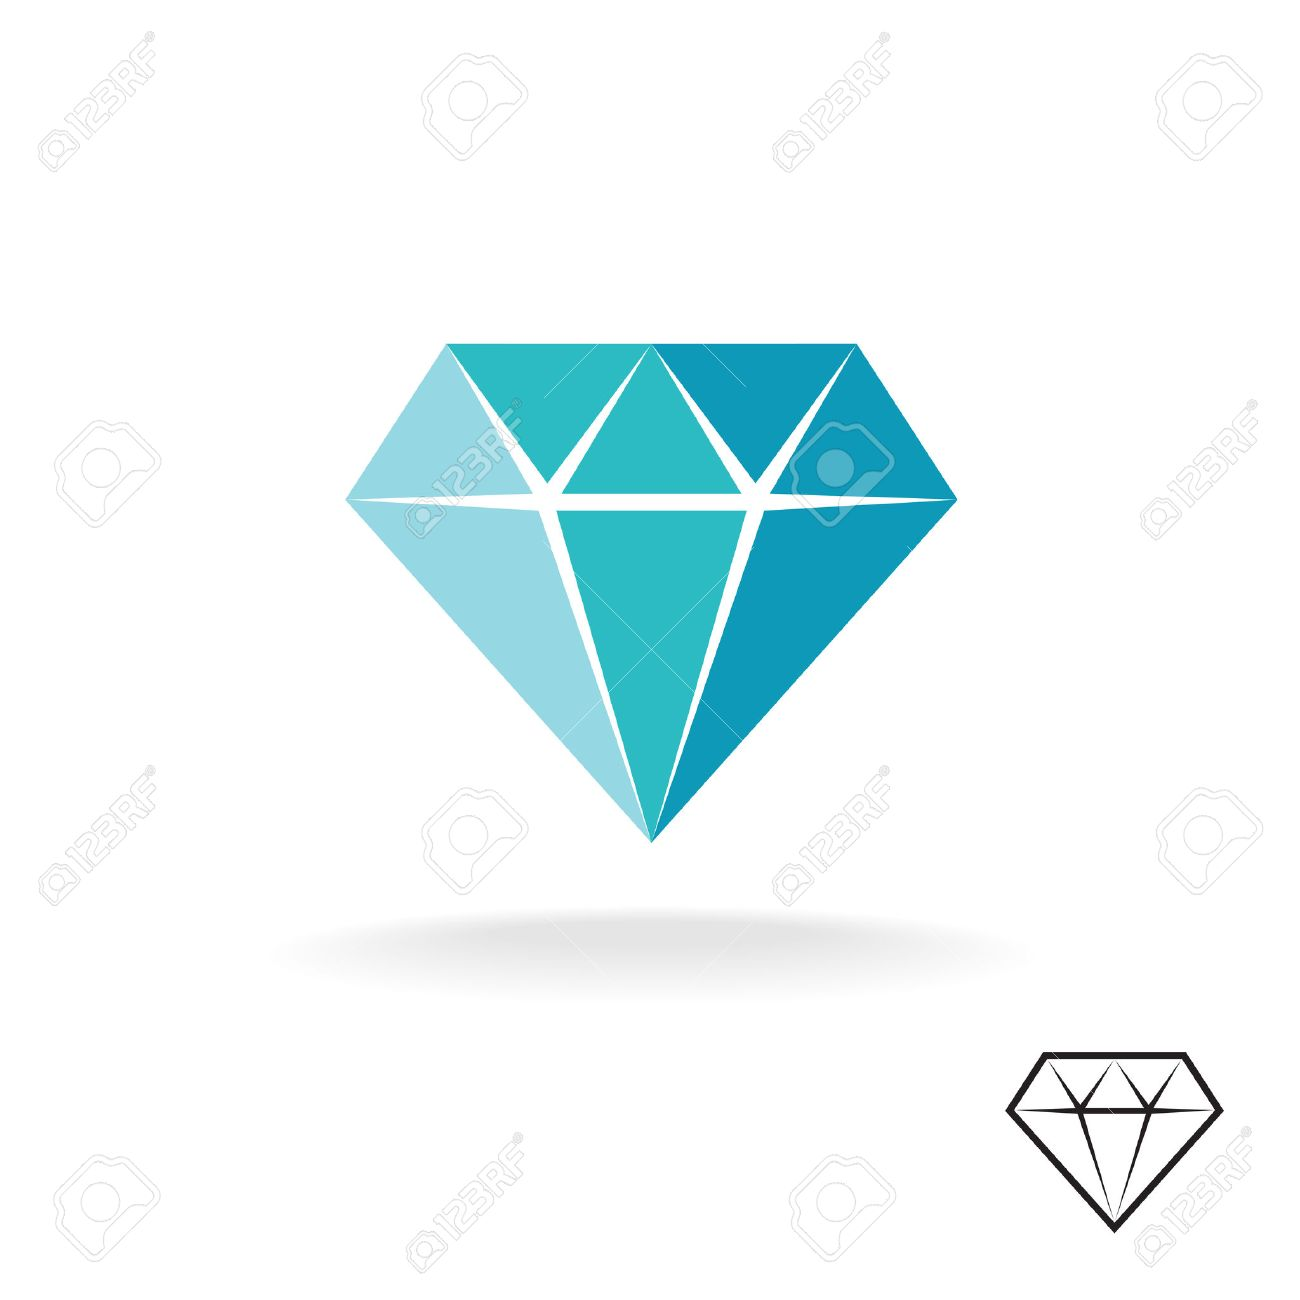 icon vector purple logo image s jewelry diamond fashion photo d stock modern identity crystal letter